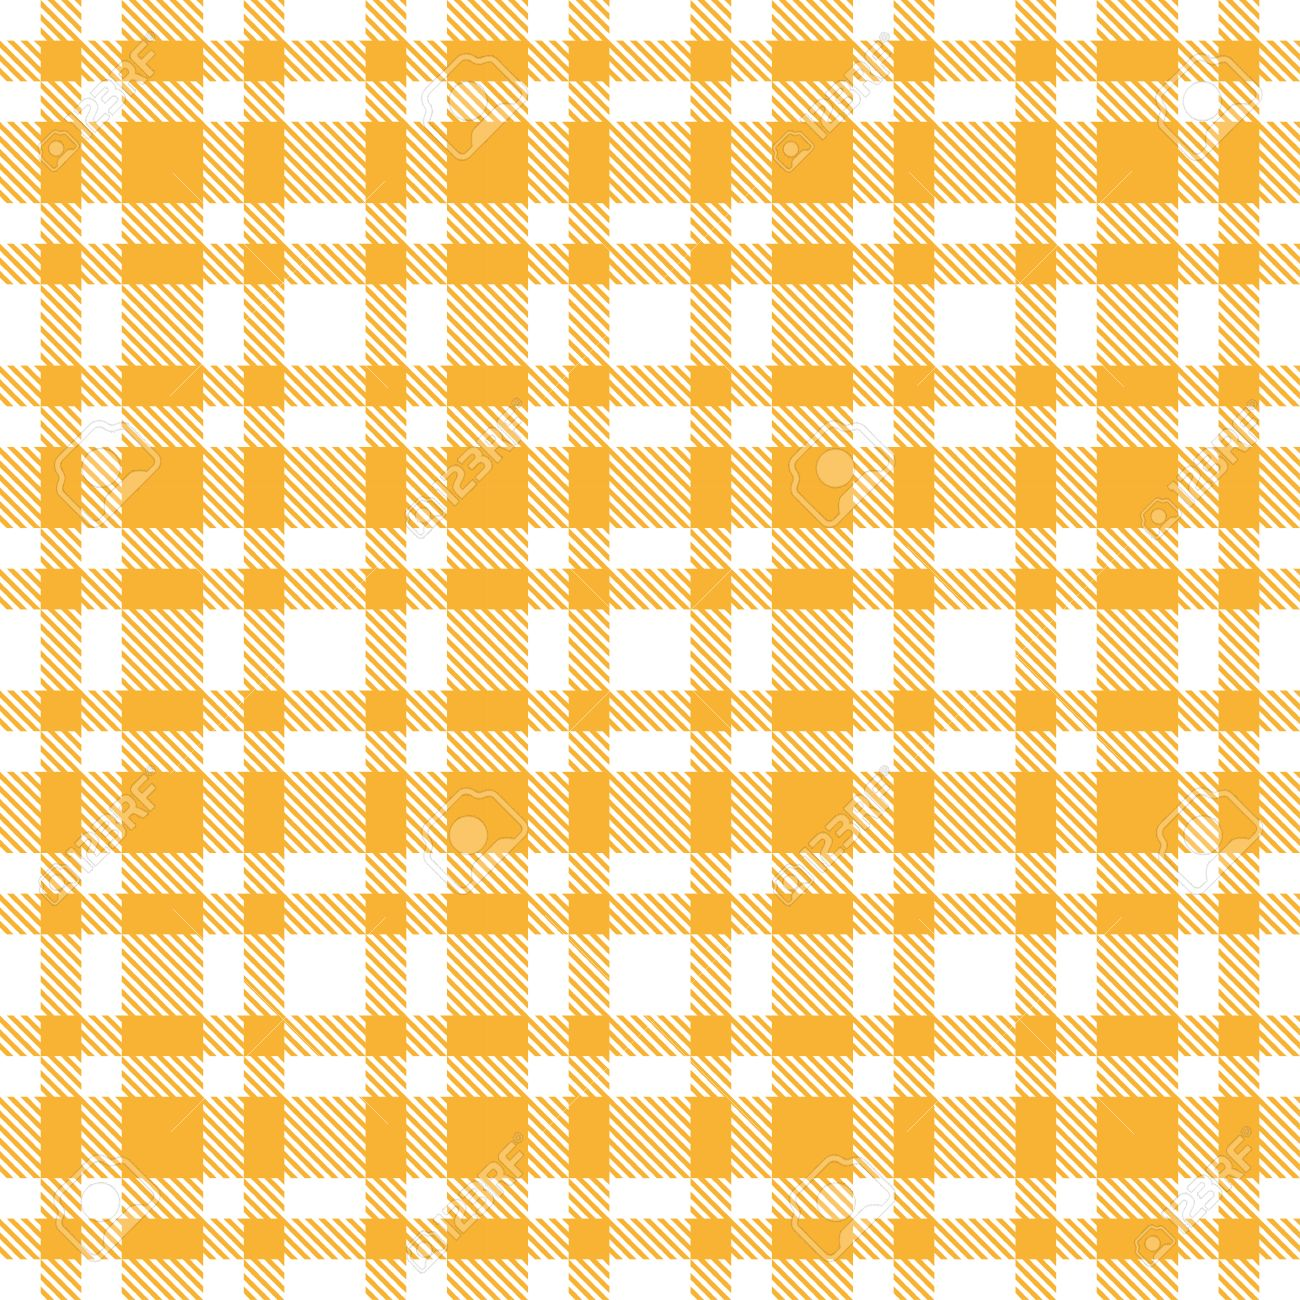 Exceptionnel Checkered Table Cloth Background Yellow Stock Vector   31625572